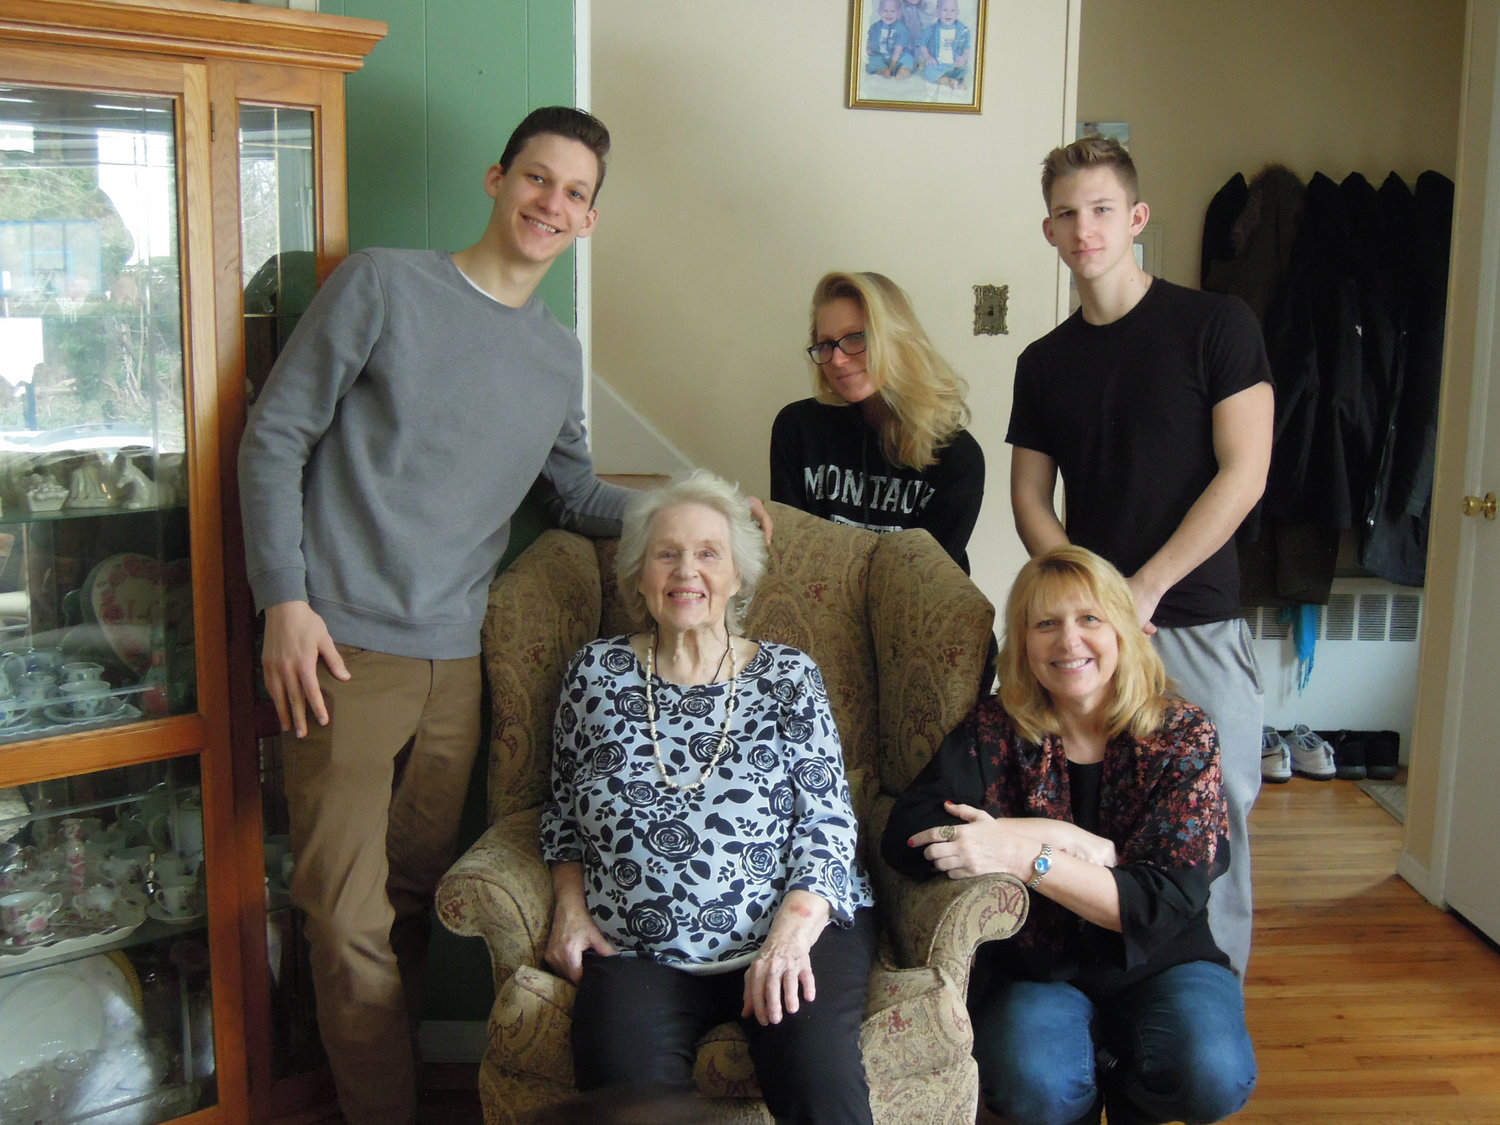 Dorothy Meinke, with, clockwise from left, her grandchildren Eric, Deanna and Chris Schneider and her daughter, Donna Schneider, celebrated her 99th birthday on March 2.